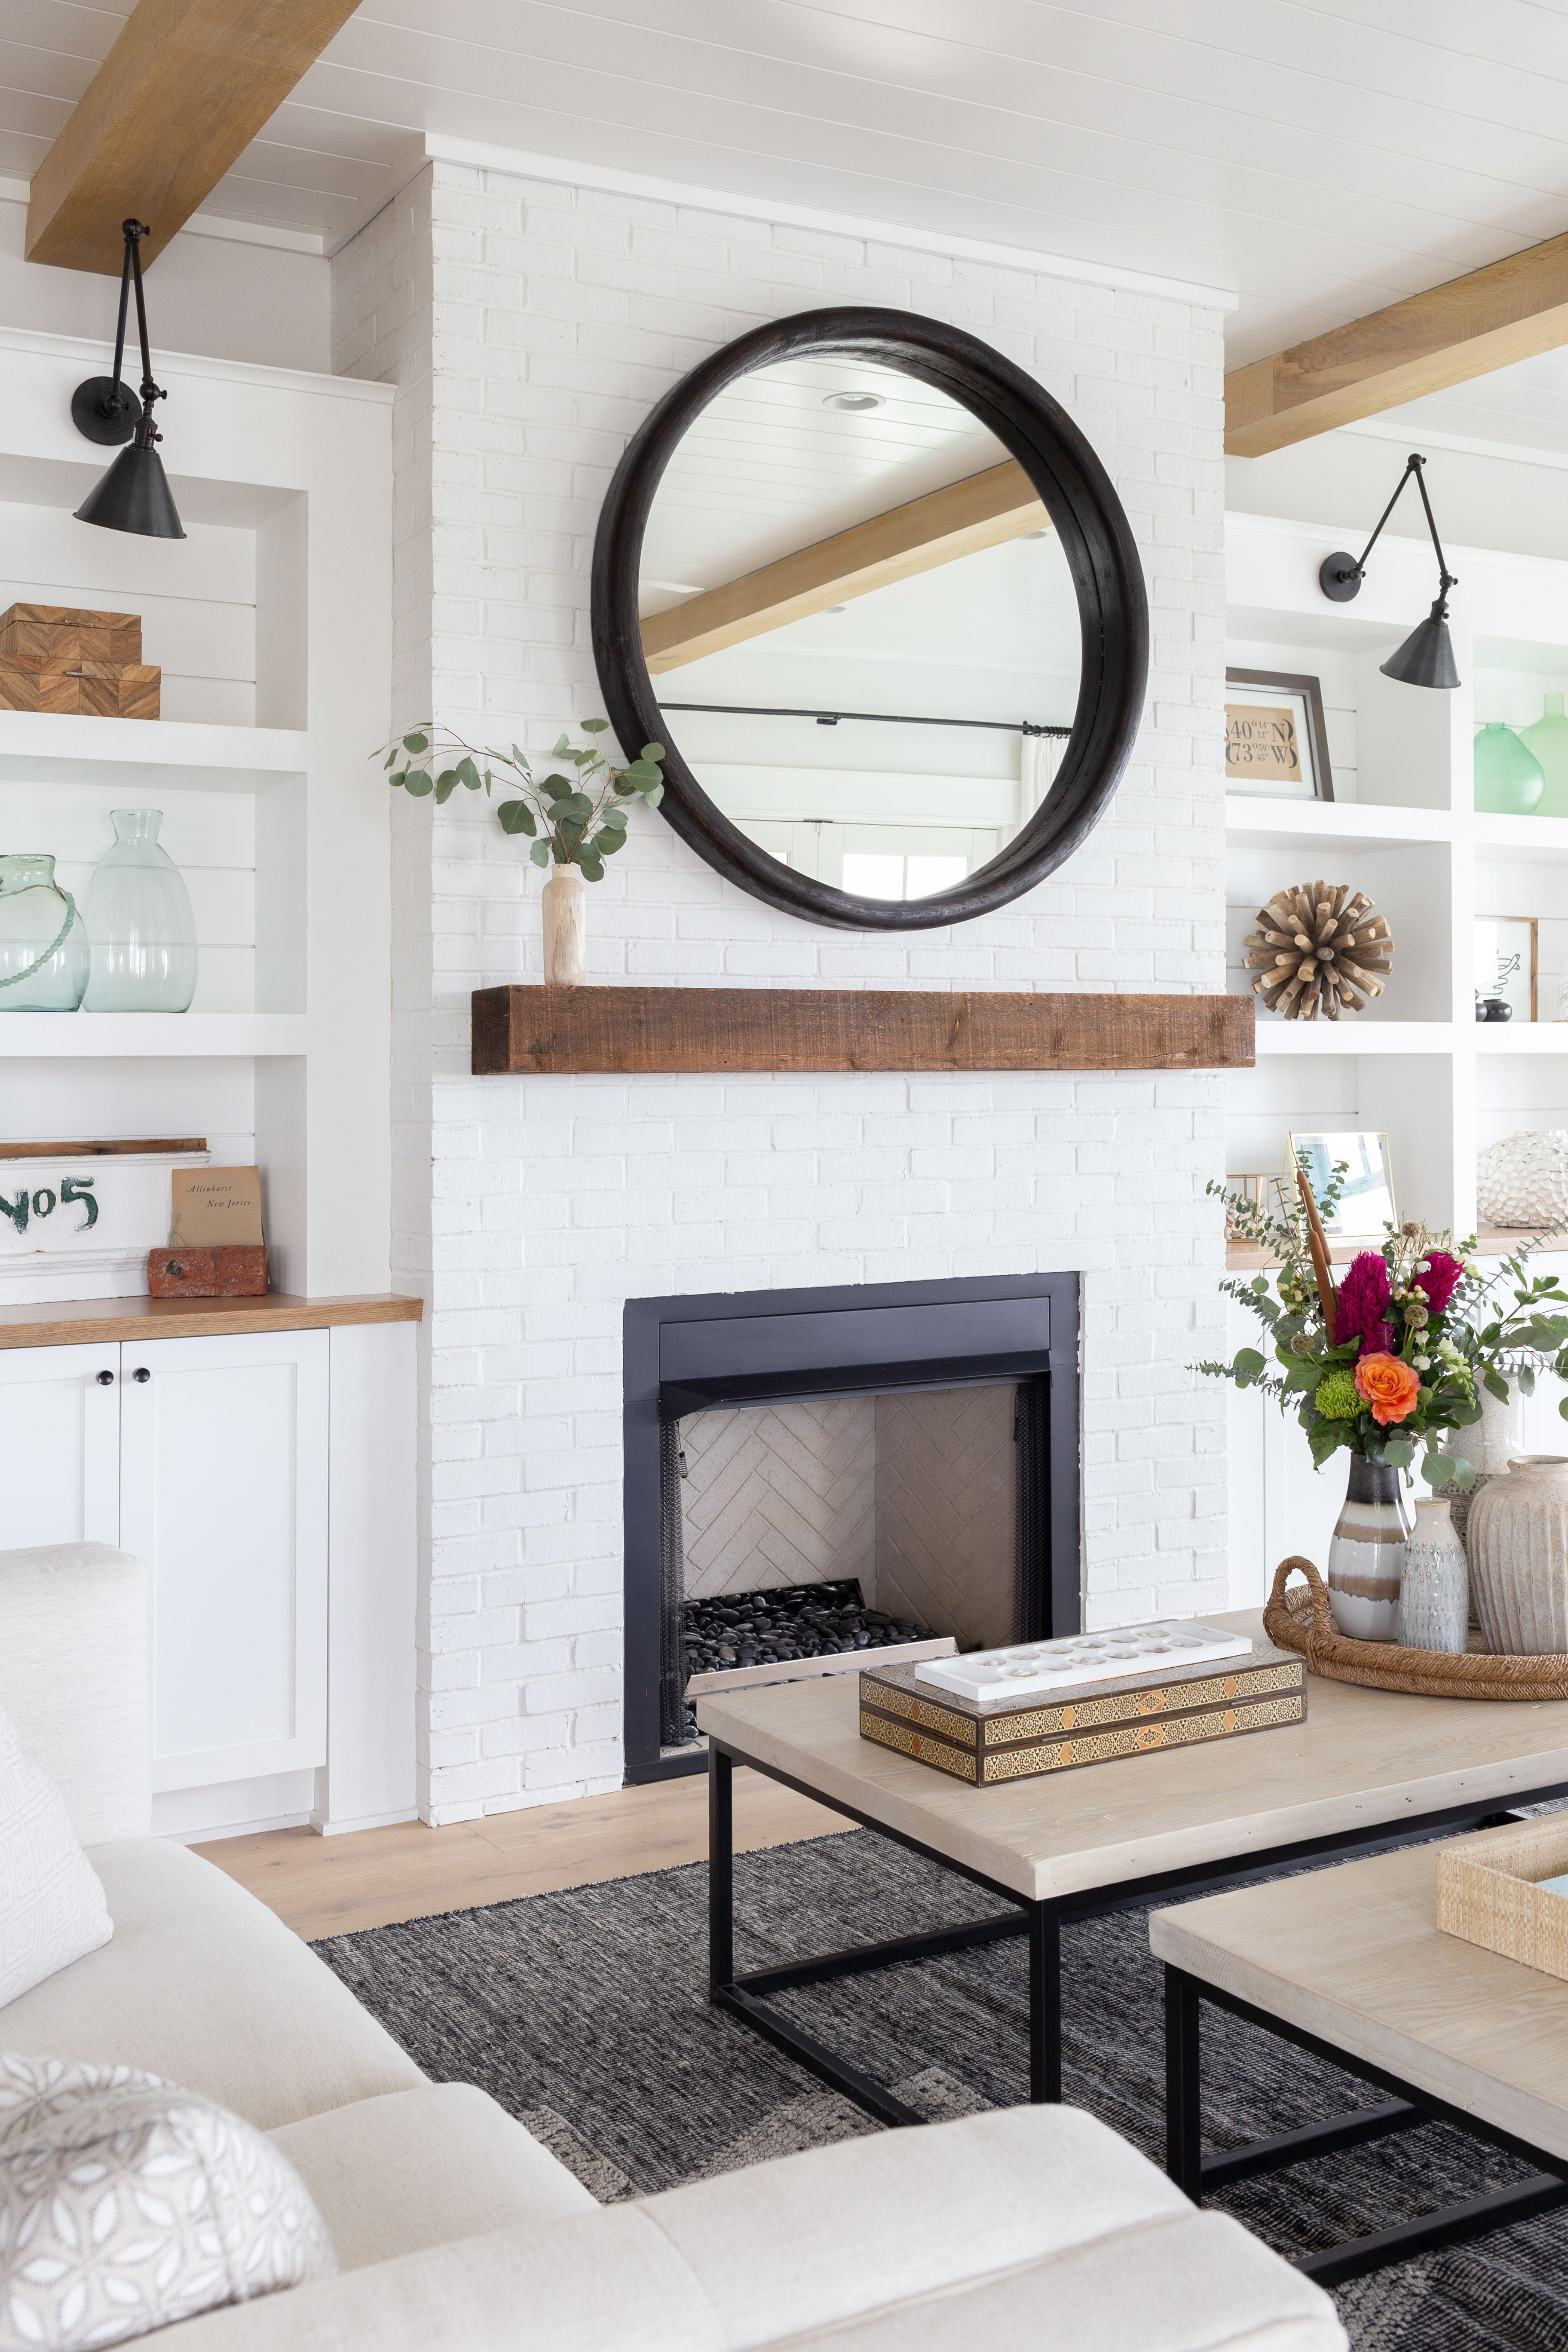 3 Home Decor Trends For Spring Brittany Stager: A Beachside Mediterranean-Style Summer Home In Allenhurst